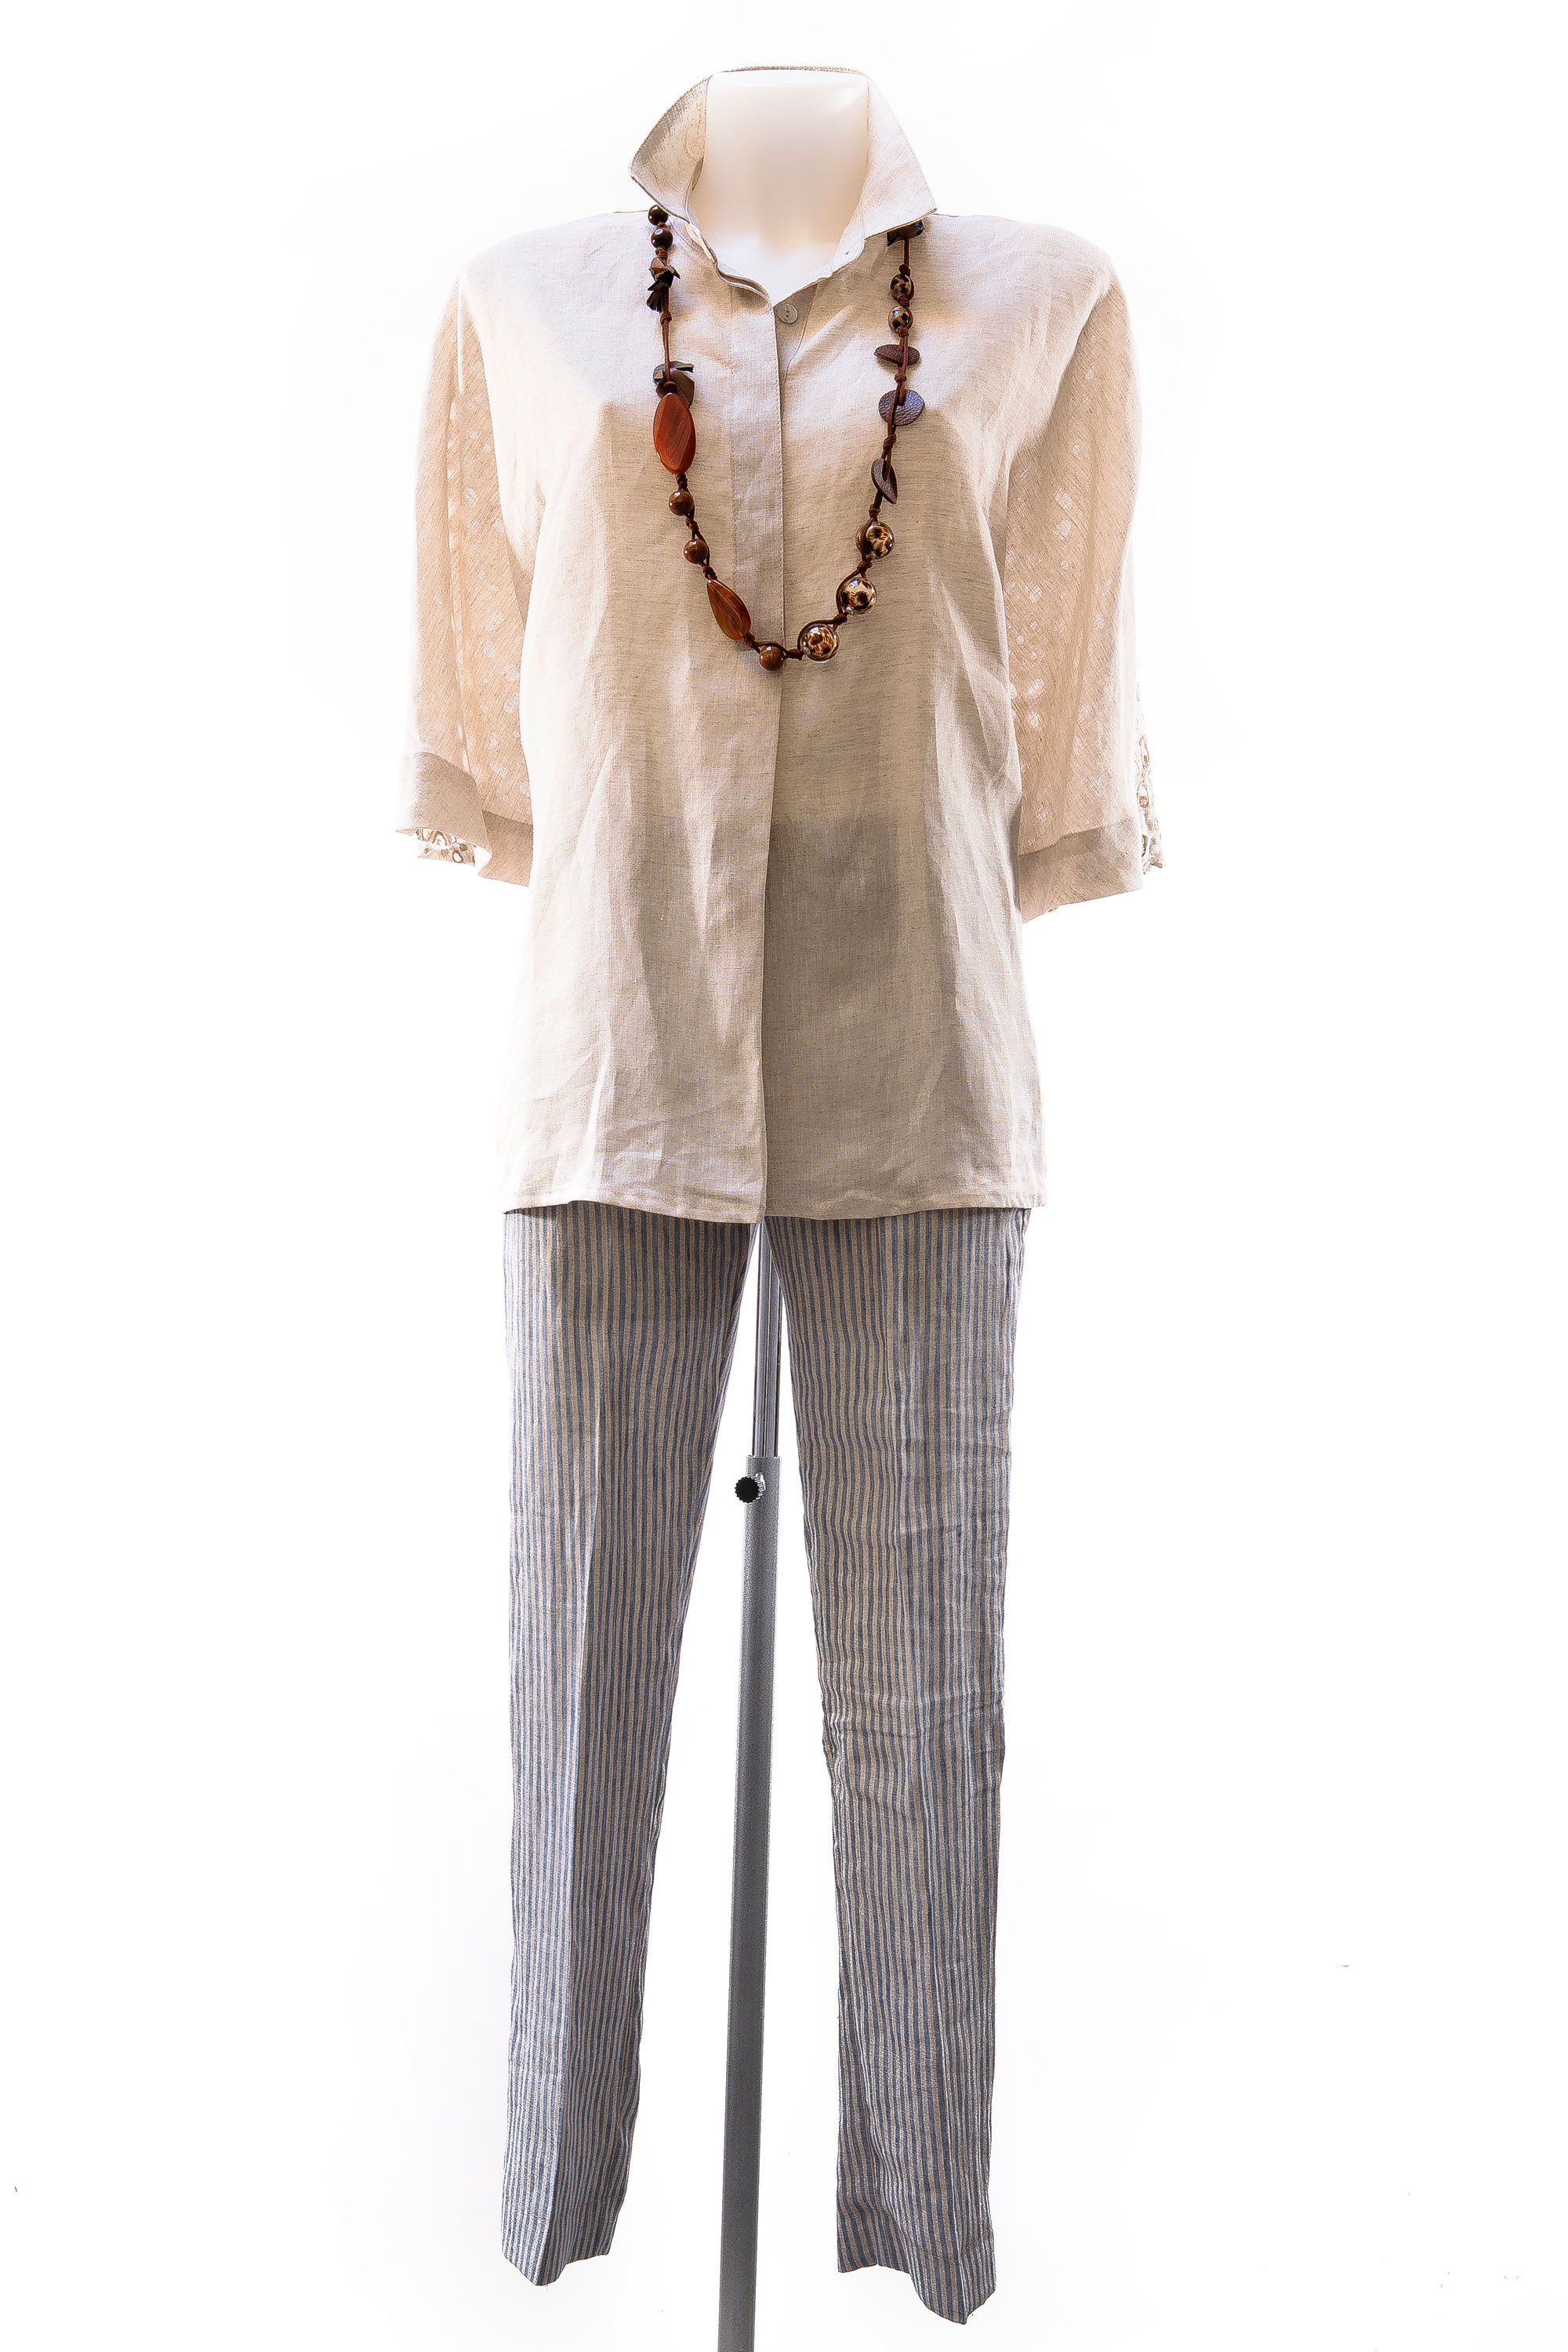 Linen shirt and trousers